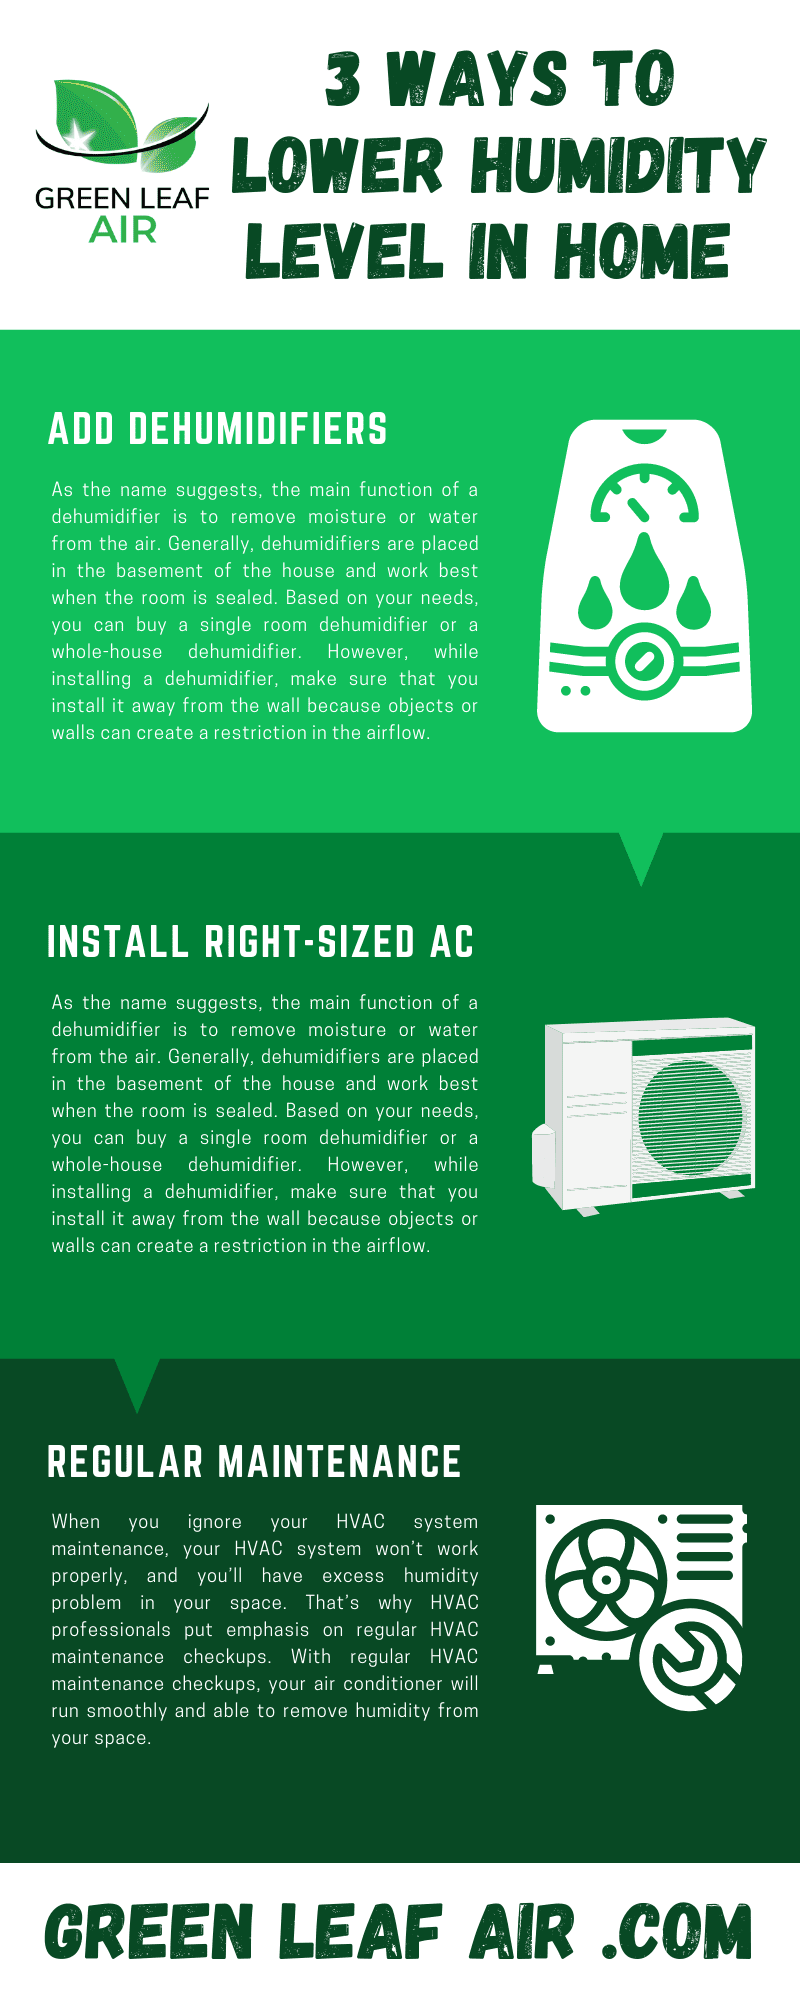 3 Ways to Lower Humidity Level In Home [Infographic]